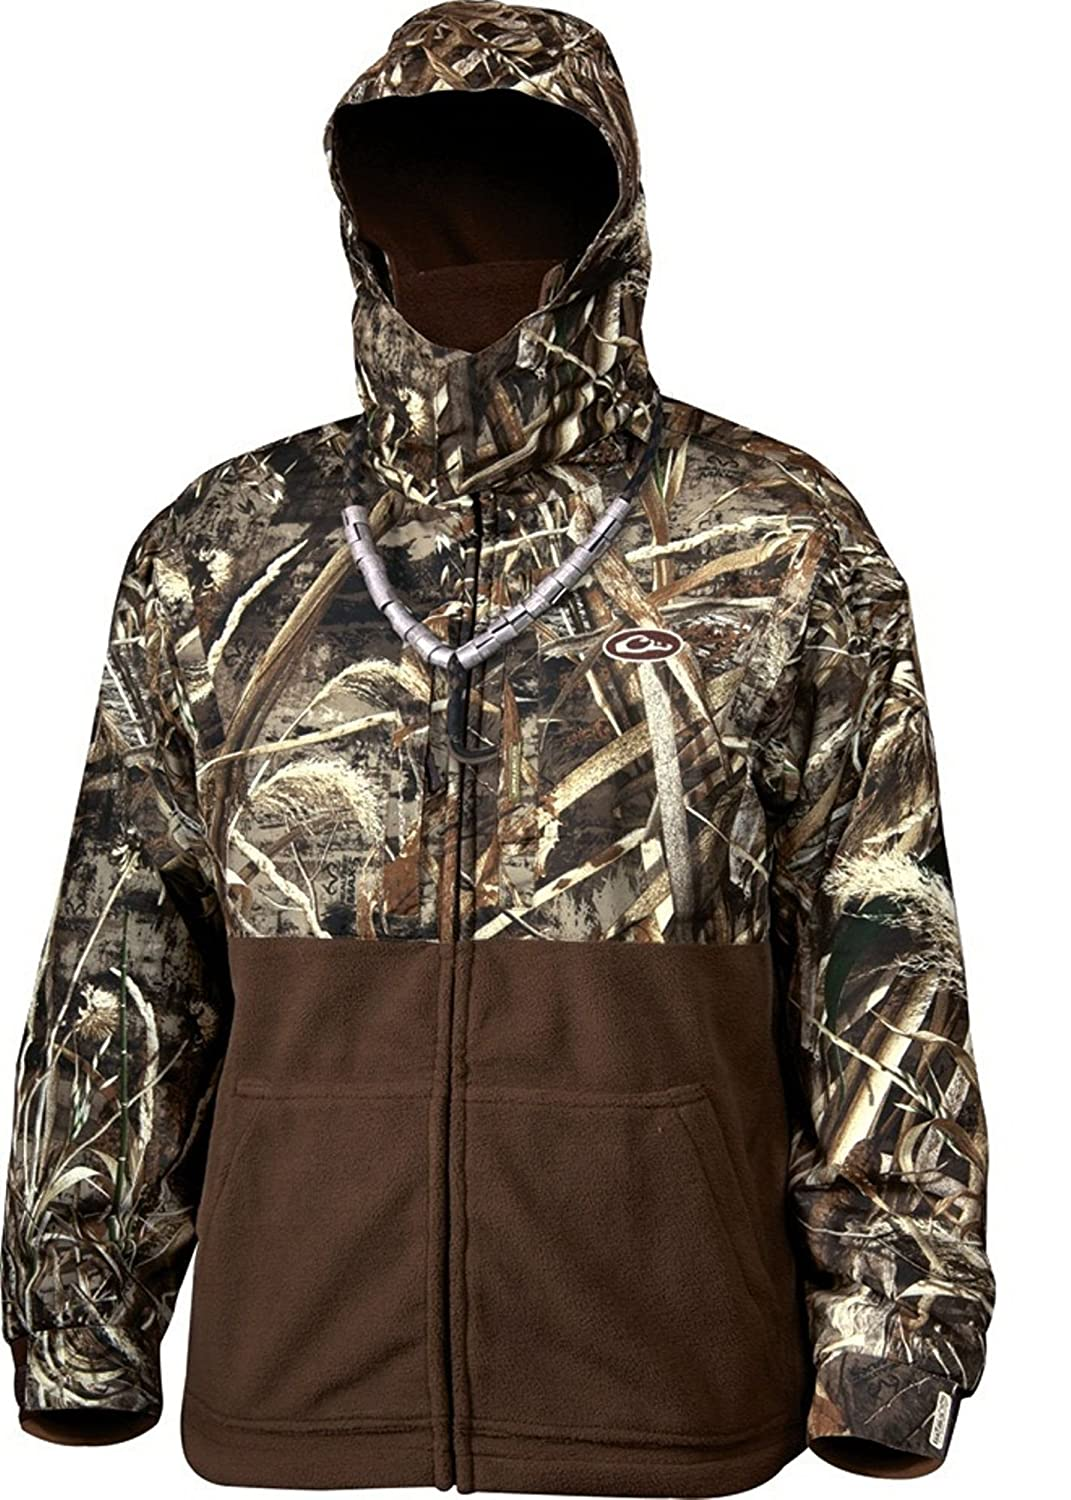 0d45ea519c Amazon.com  Drake MST Eqwader Deluxe Full Zip Hunting Jacket (Realtree  Max-5) (Men s XL)  Sports   Outdoors